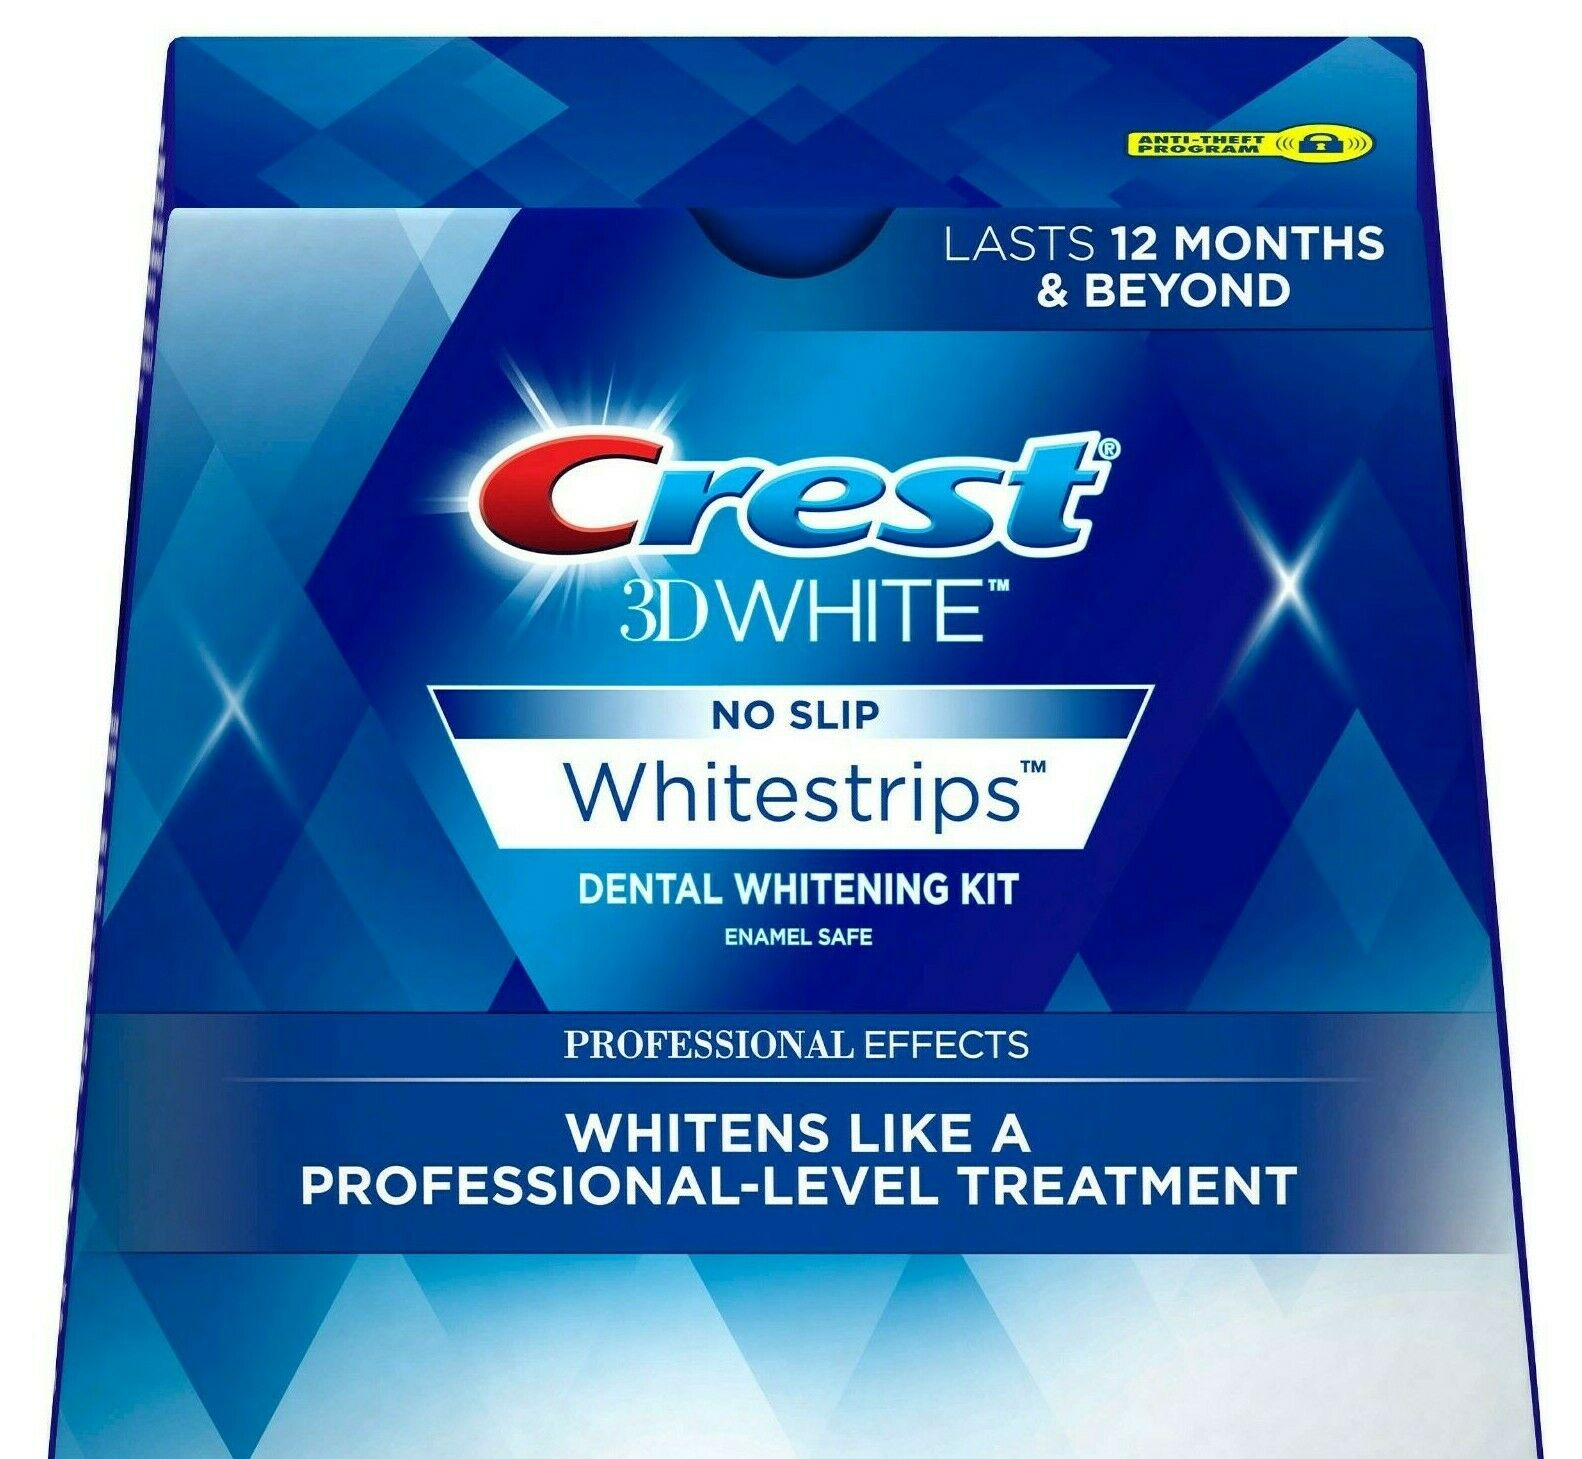 Crest Whitestrips Professional Effects 3D White 20 Strips 10